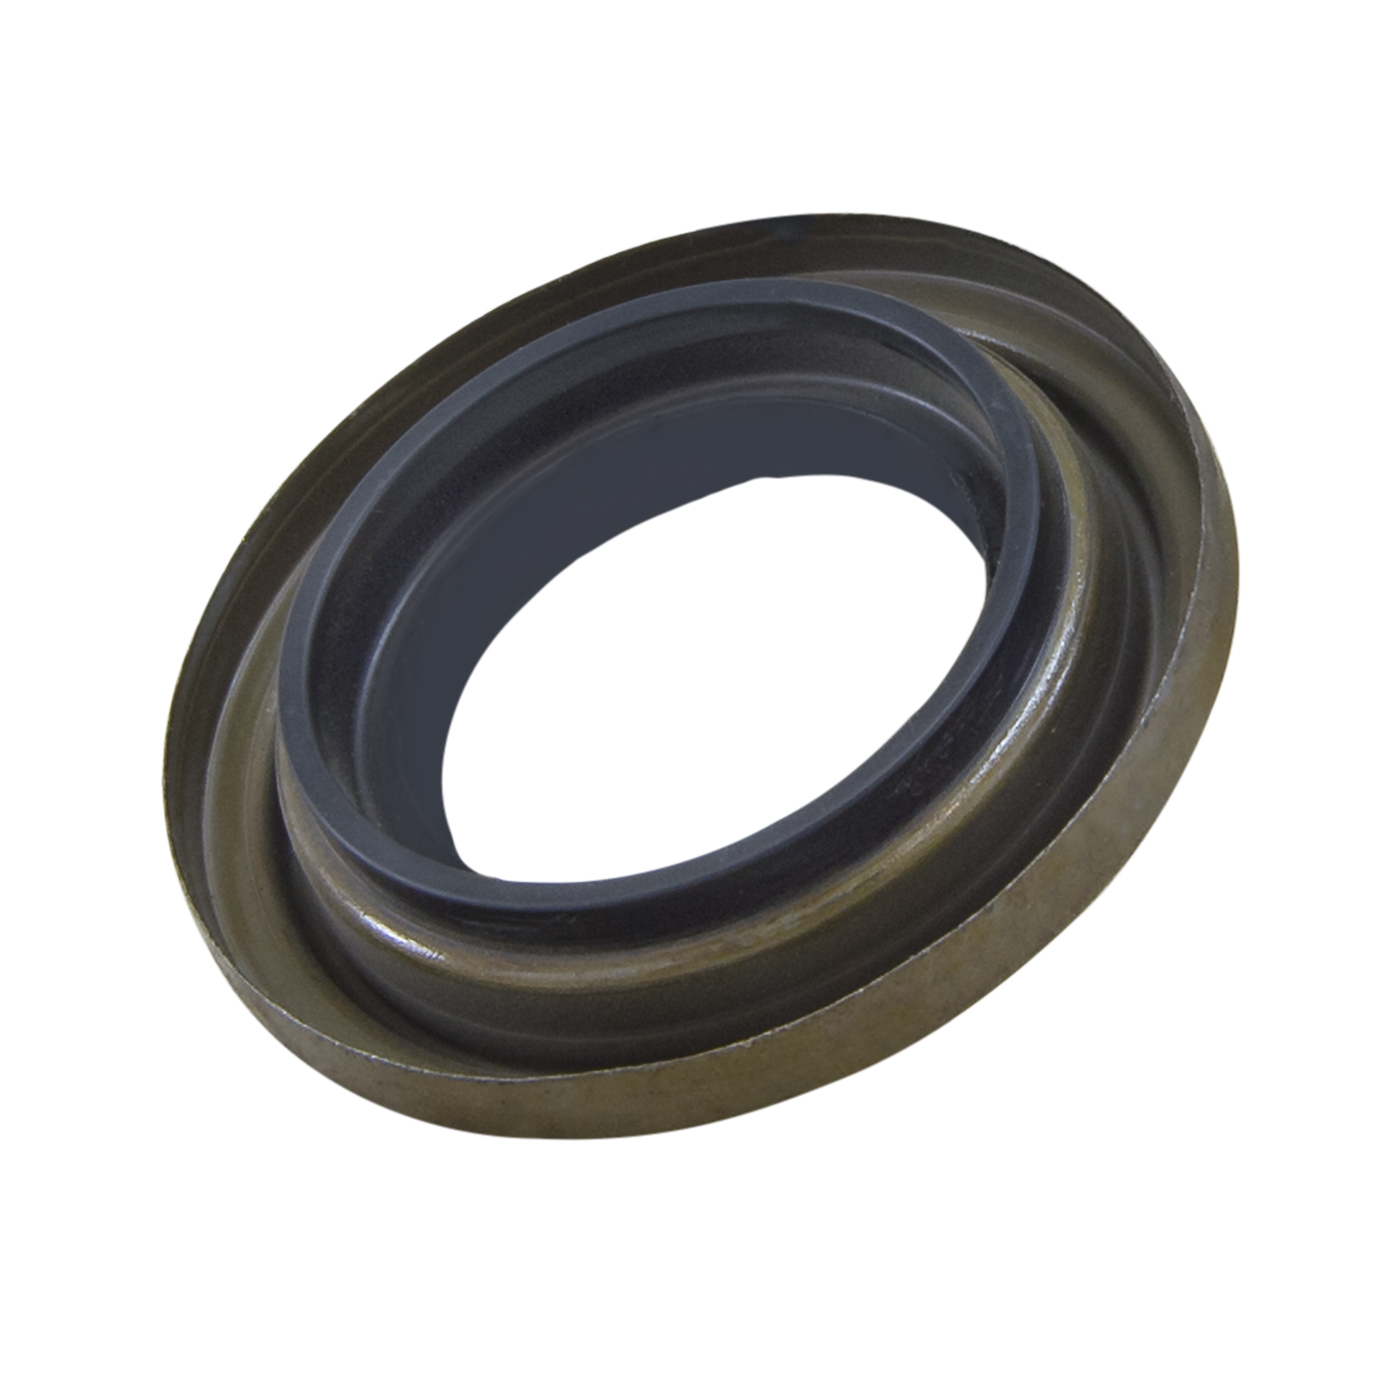 YMS4244 - Replacement pinion seal for special application: Model 35 differential with Dana 44 yoke